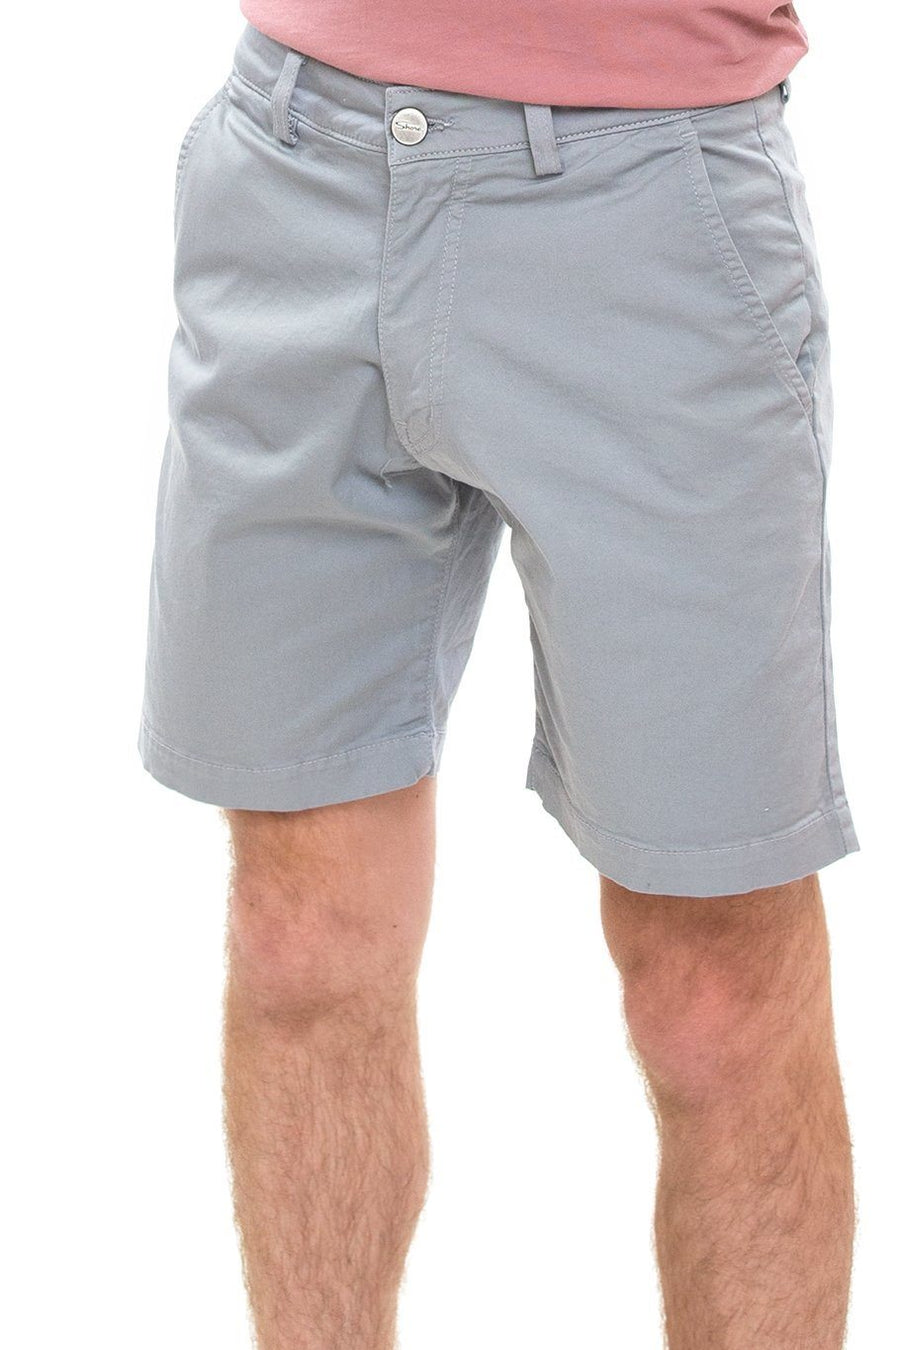 "Wesley 7.5"" Flat Front Short - High Rise - Shore"